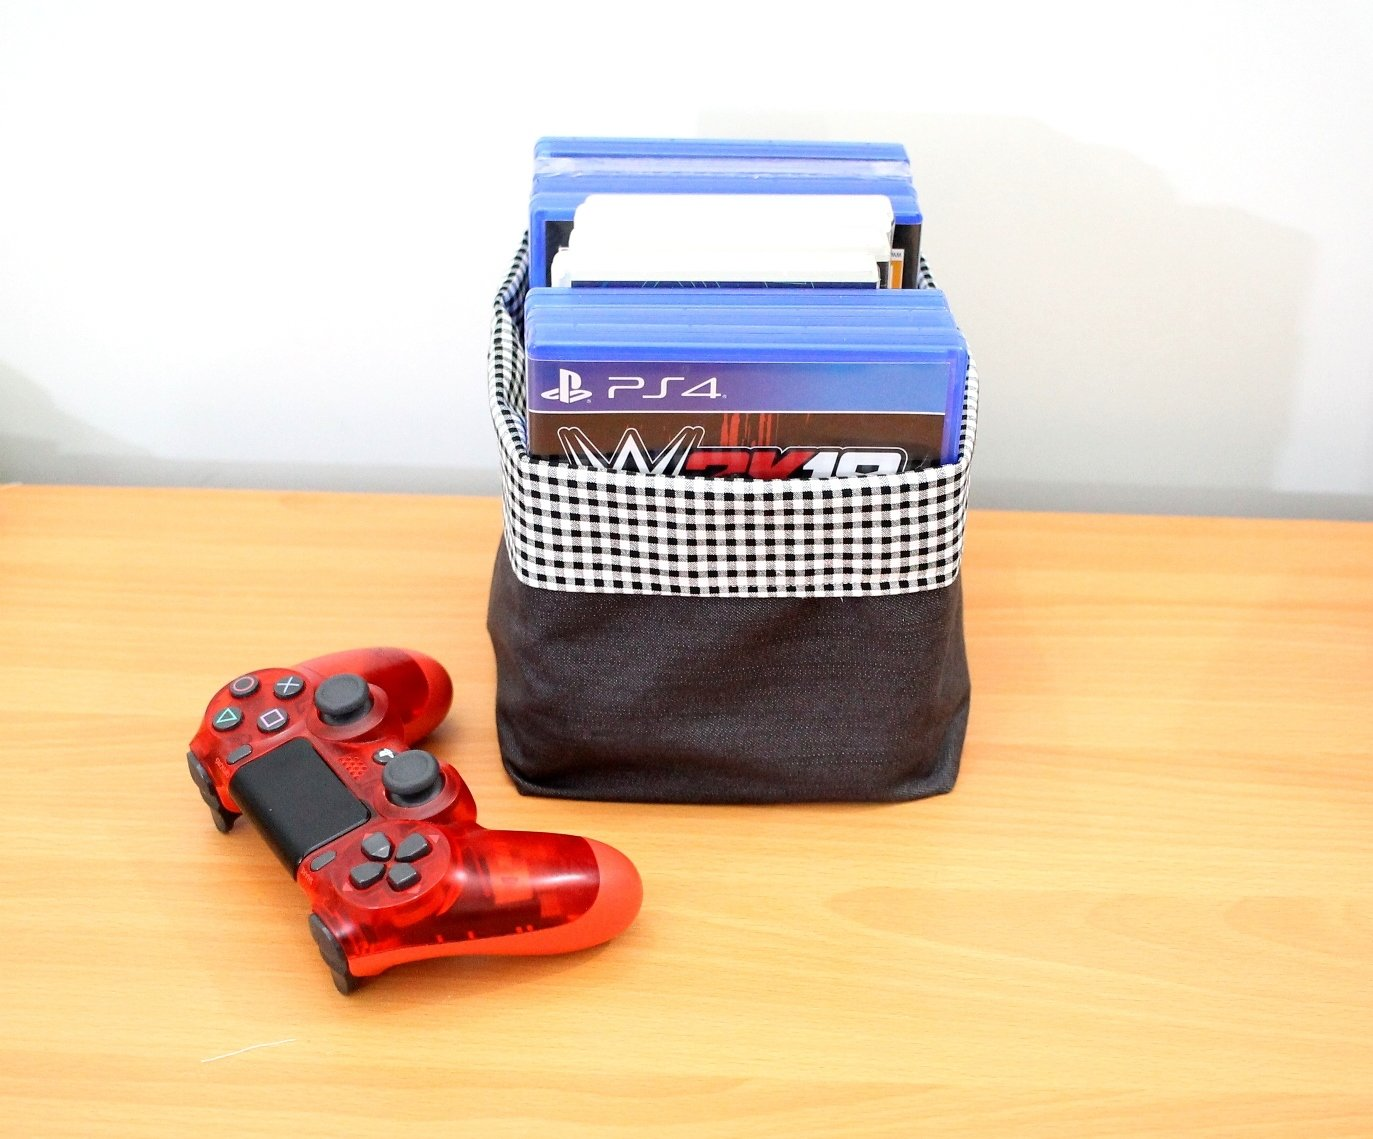 Reversible Fabric Storage for PS4 DVD - Denim Black And White Gingham